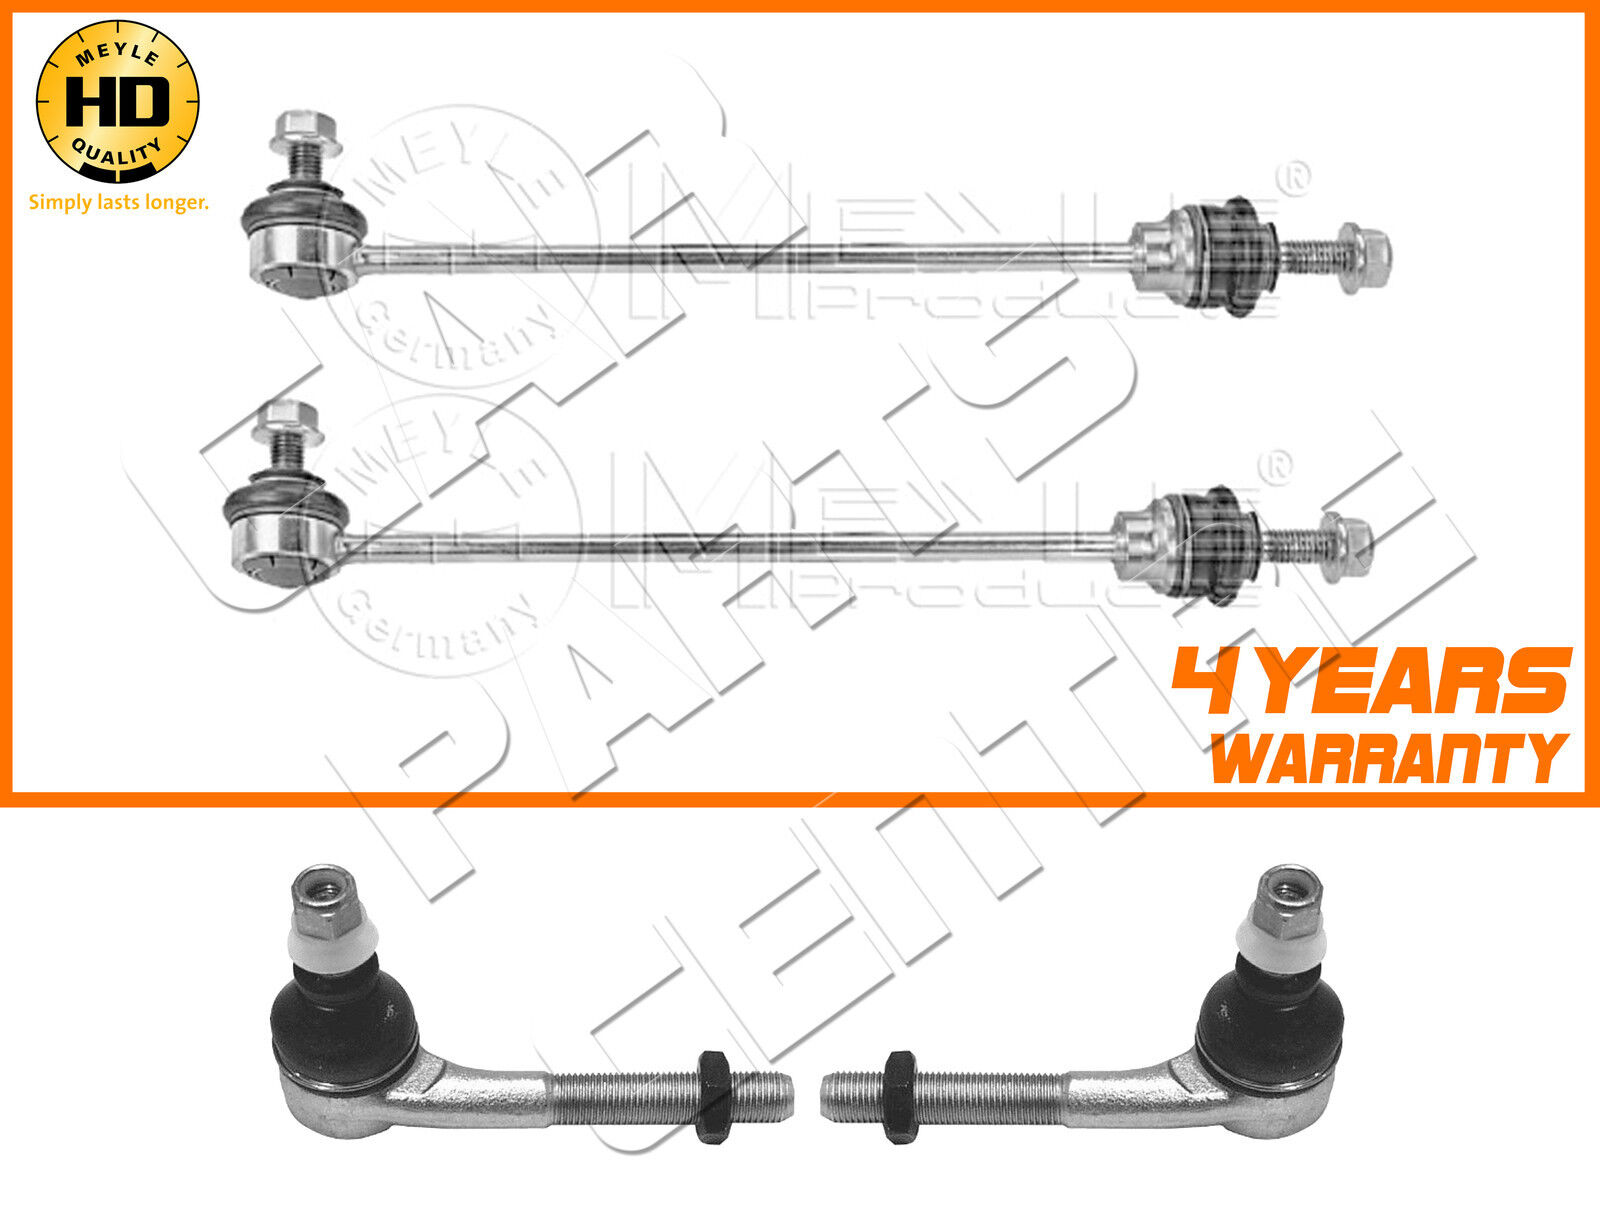 FOR 106 GTI SAXO VTR VTS HEAVY DUTY FRONT ANTIROLL BAR DROP LINKS TRACK ROD ENDS